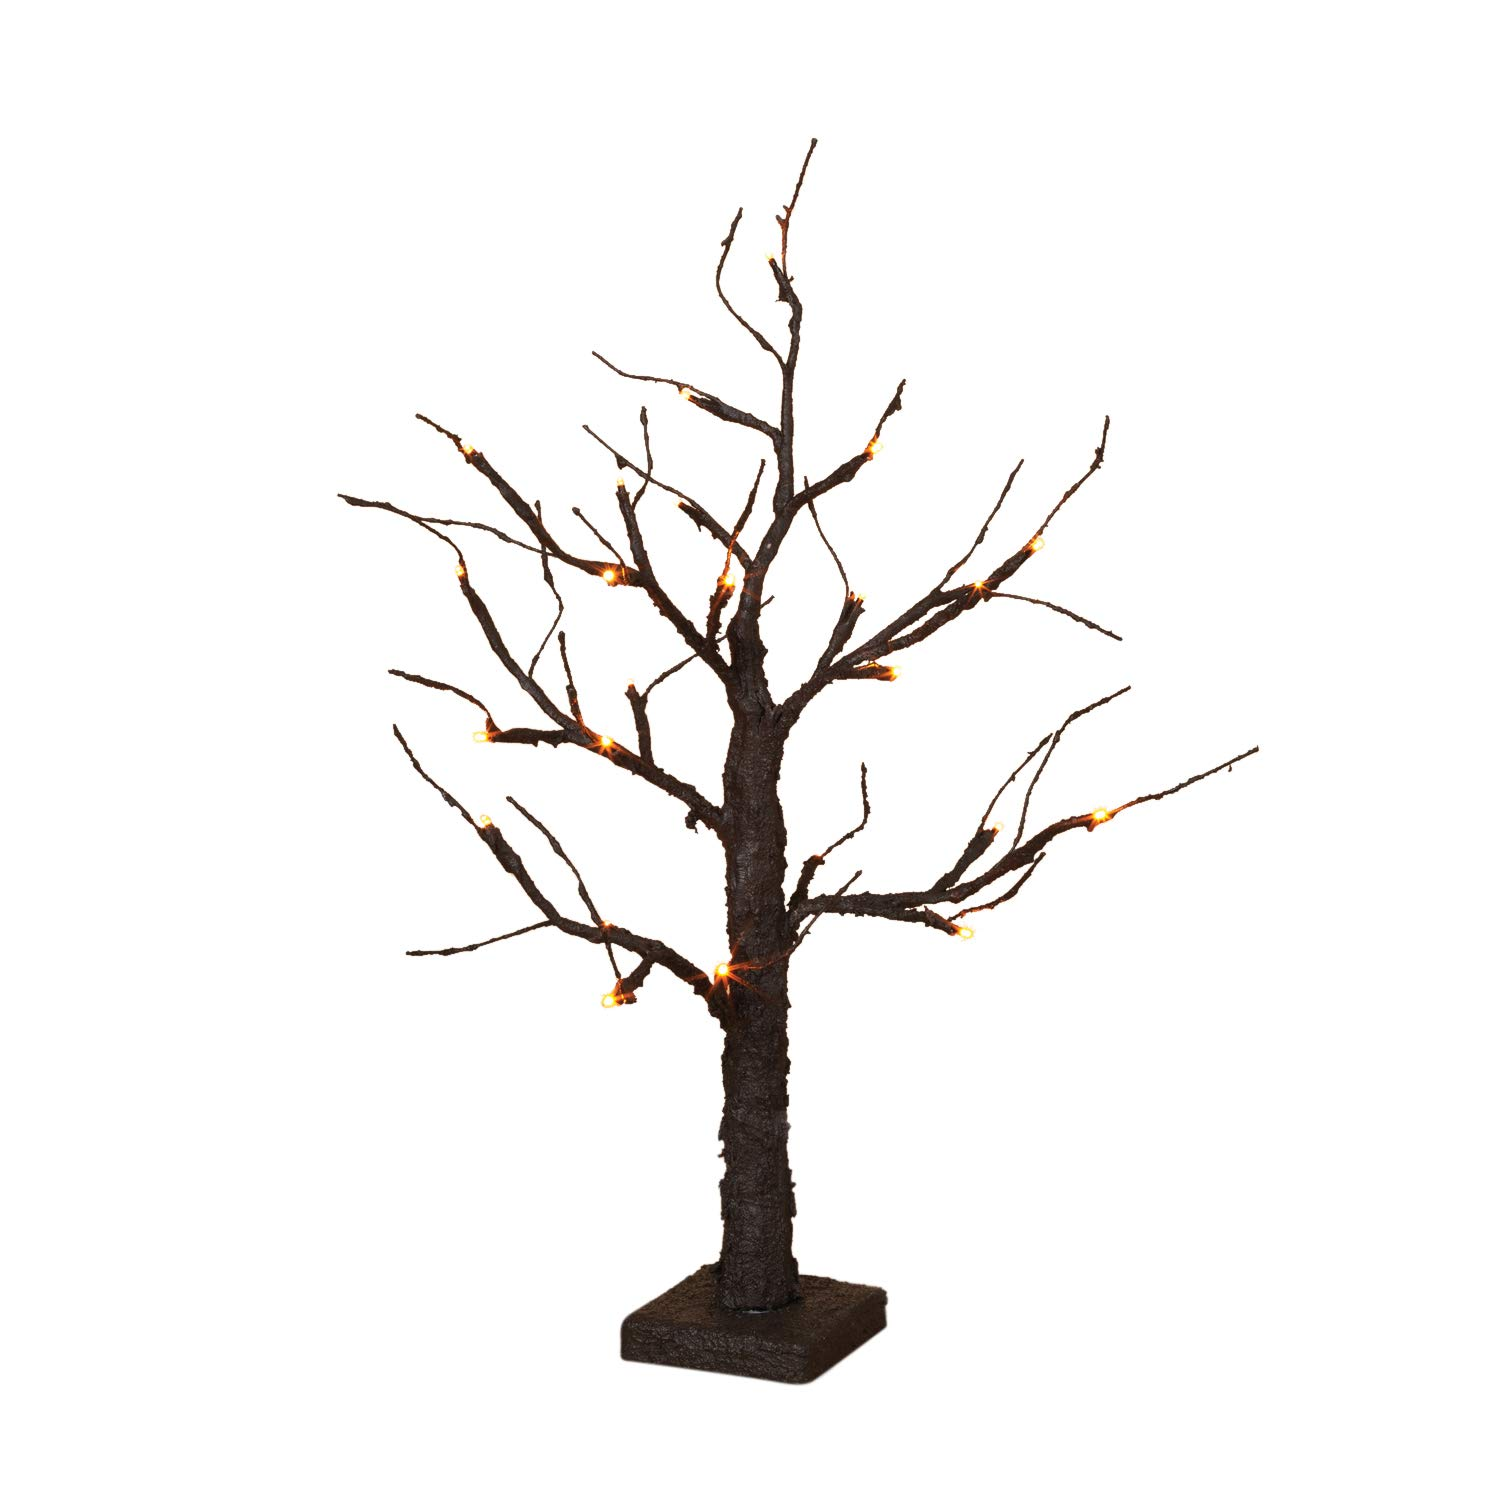 Spooky Halloween Tree 24'' Table Top LED Battery Op Figurine New in Box by Gerson International